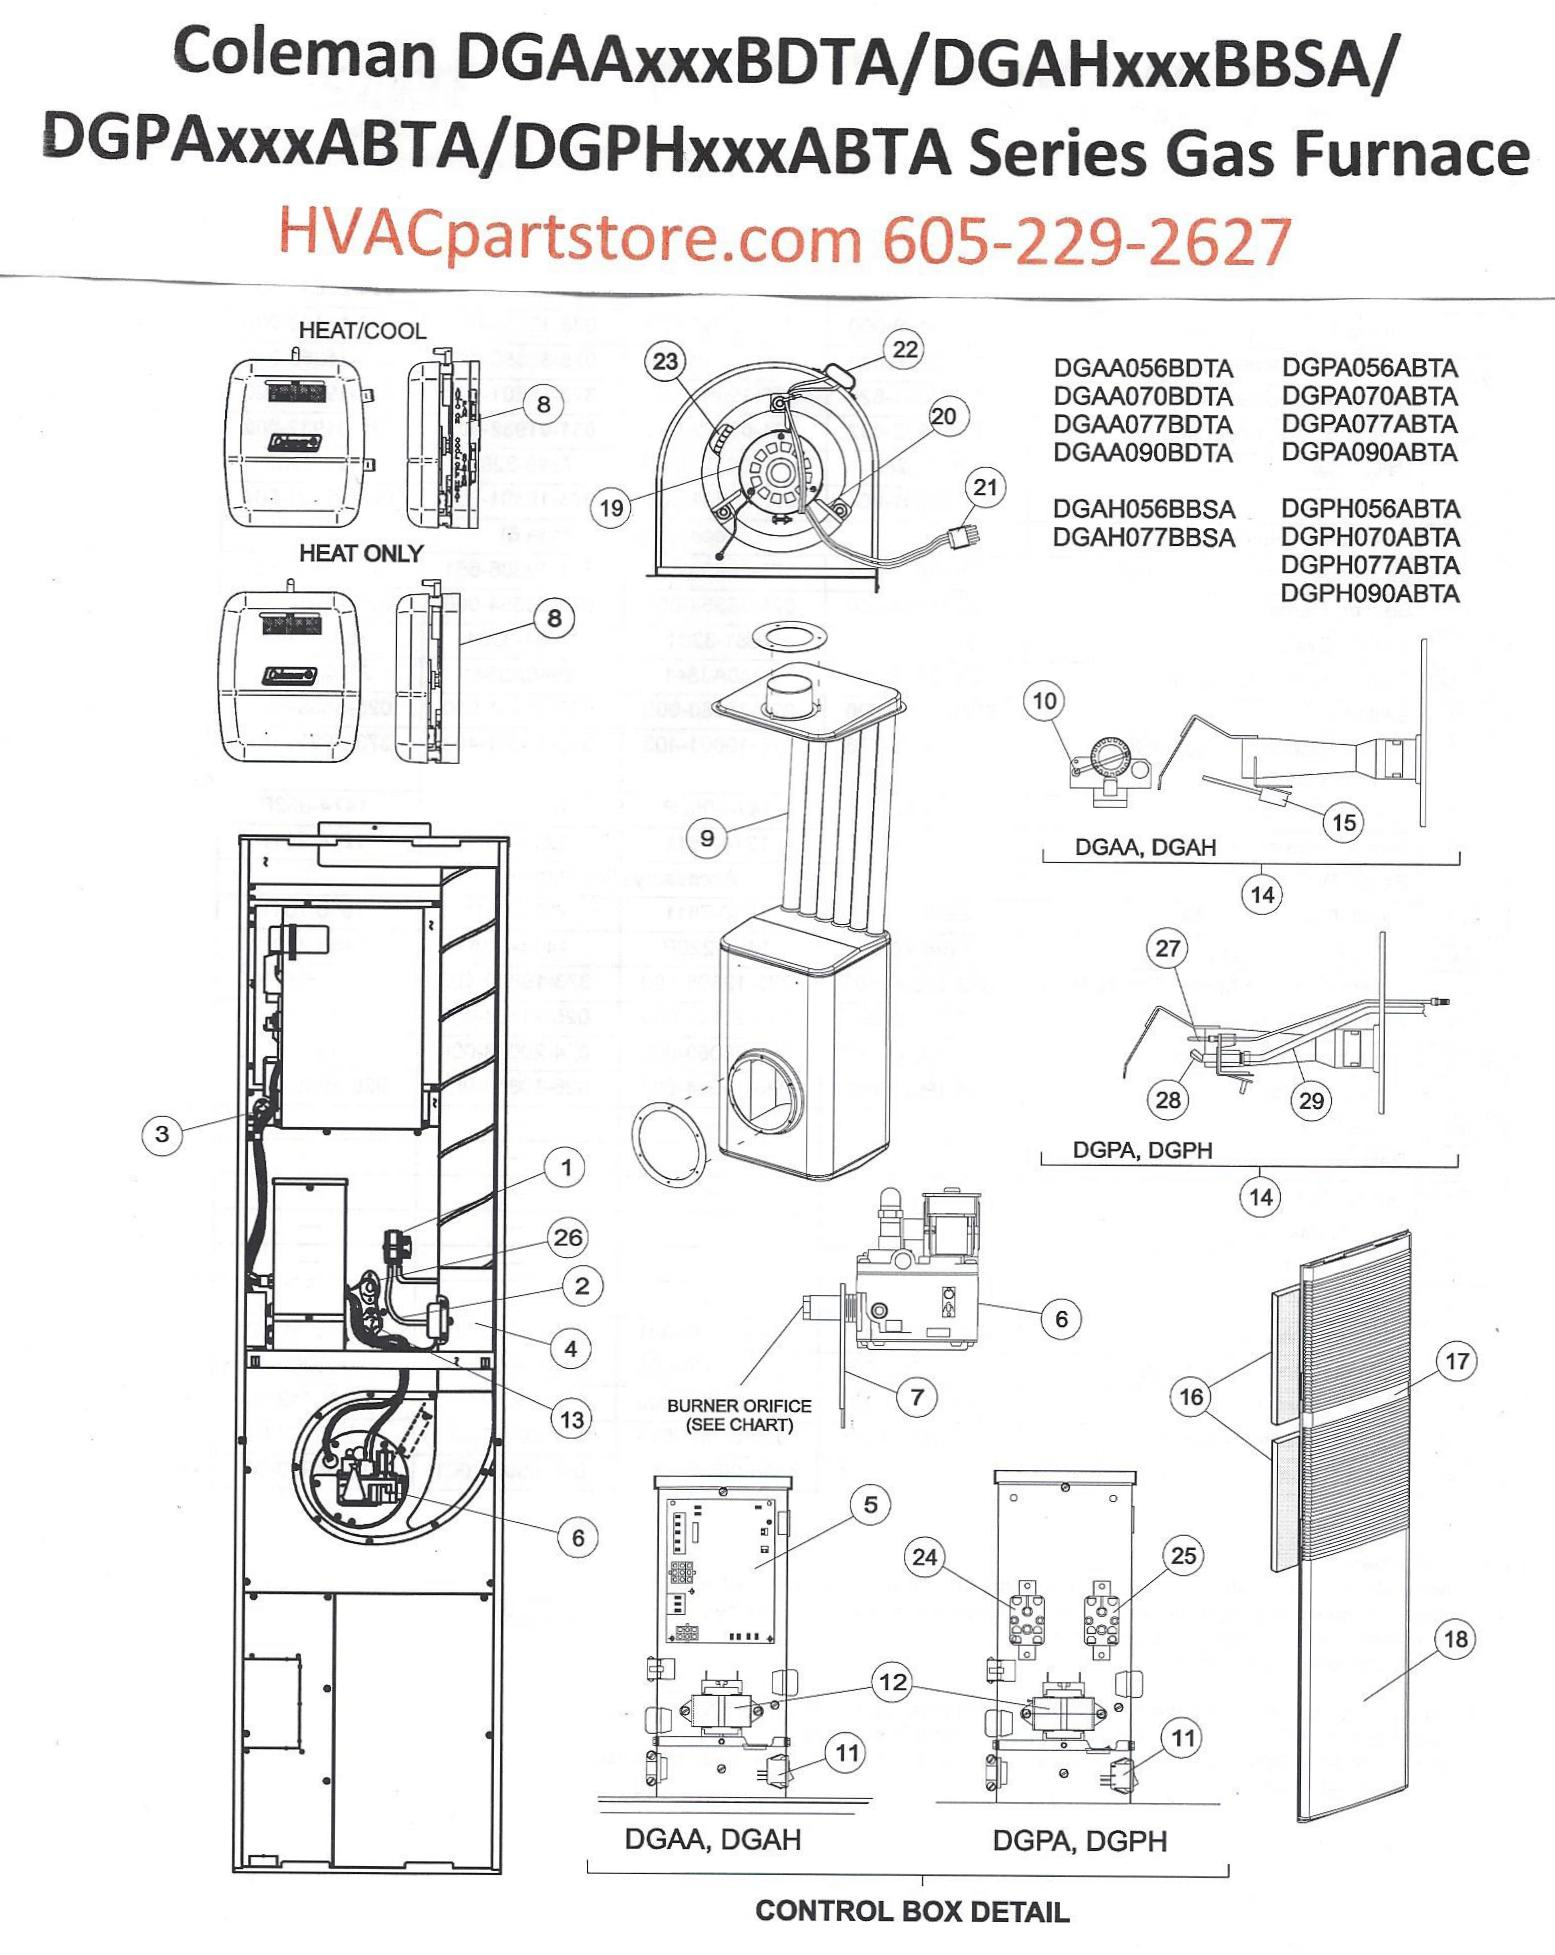 Dgaa077bdta Coleman Gas Furnace Parts Hvacpartstore Heater Wiring Diagram Click Here To View A Manual For The Which Includes Diagrams